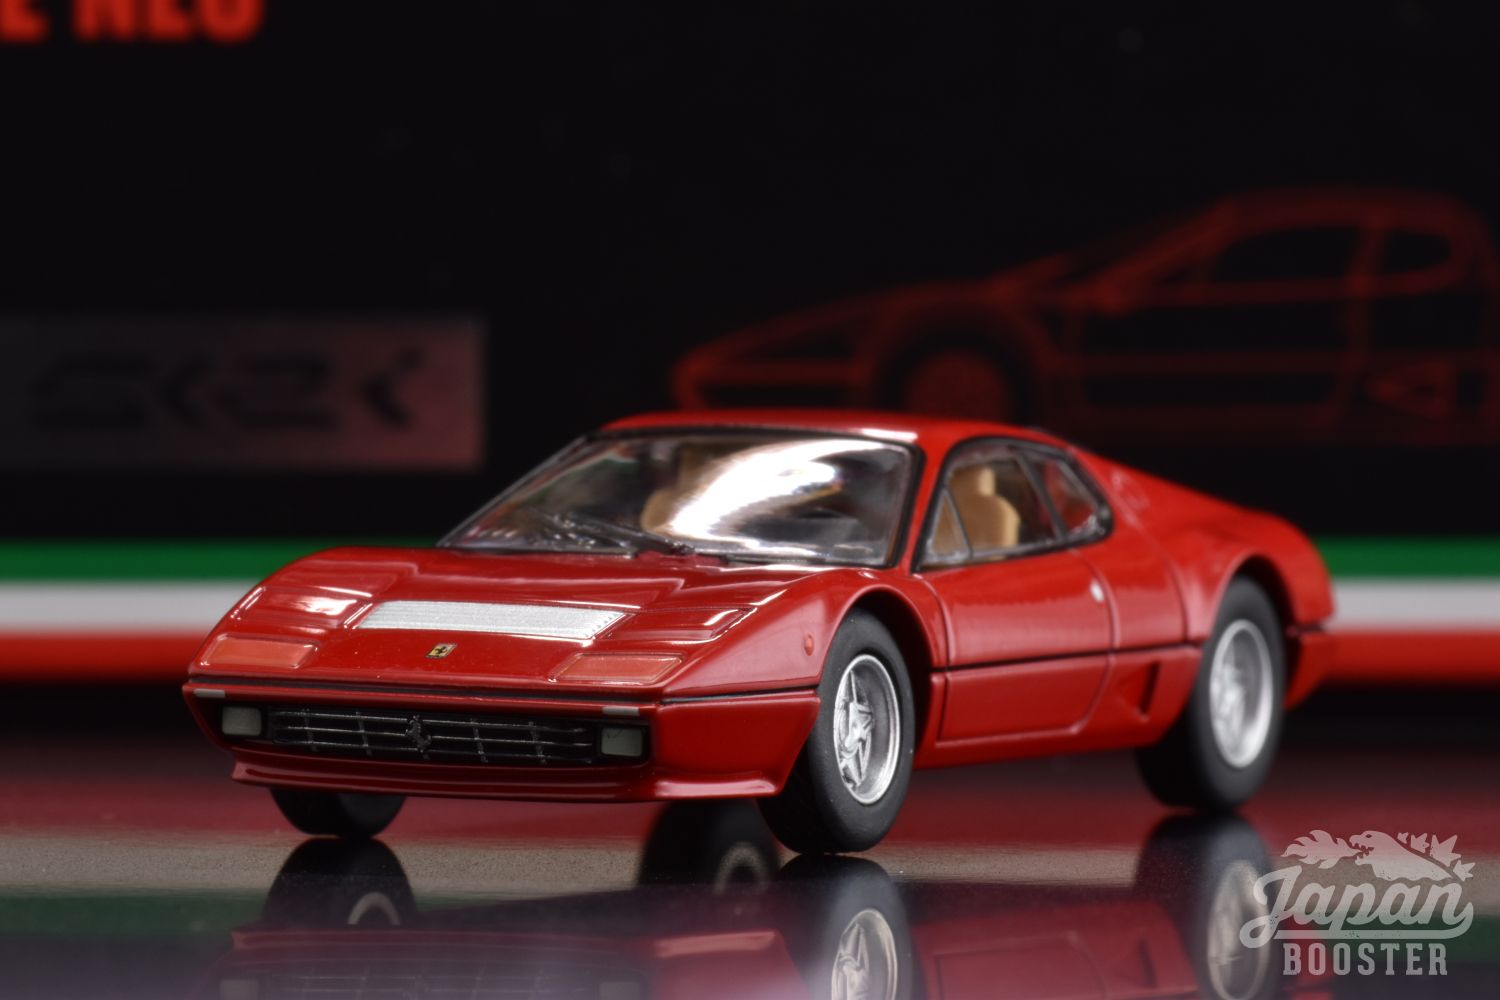 LV-FERRARI 512BBi Red